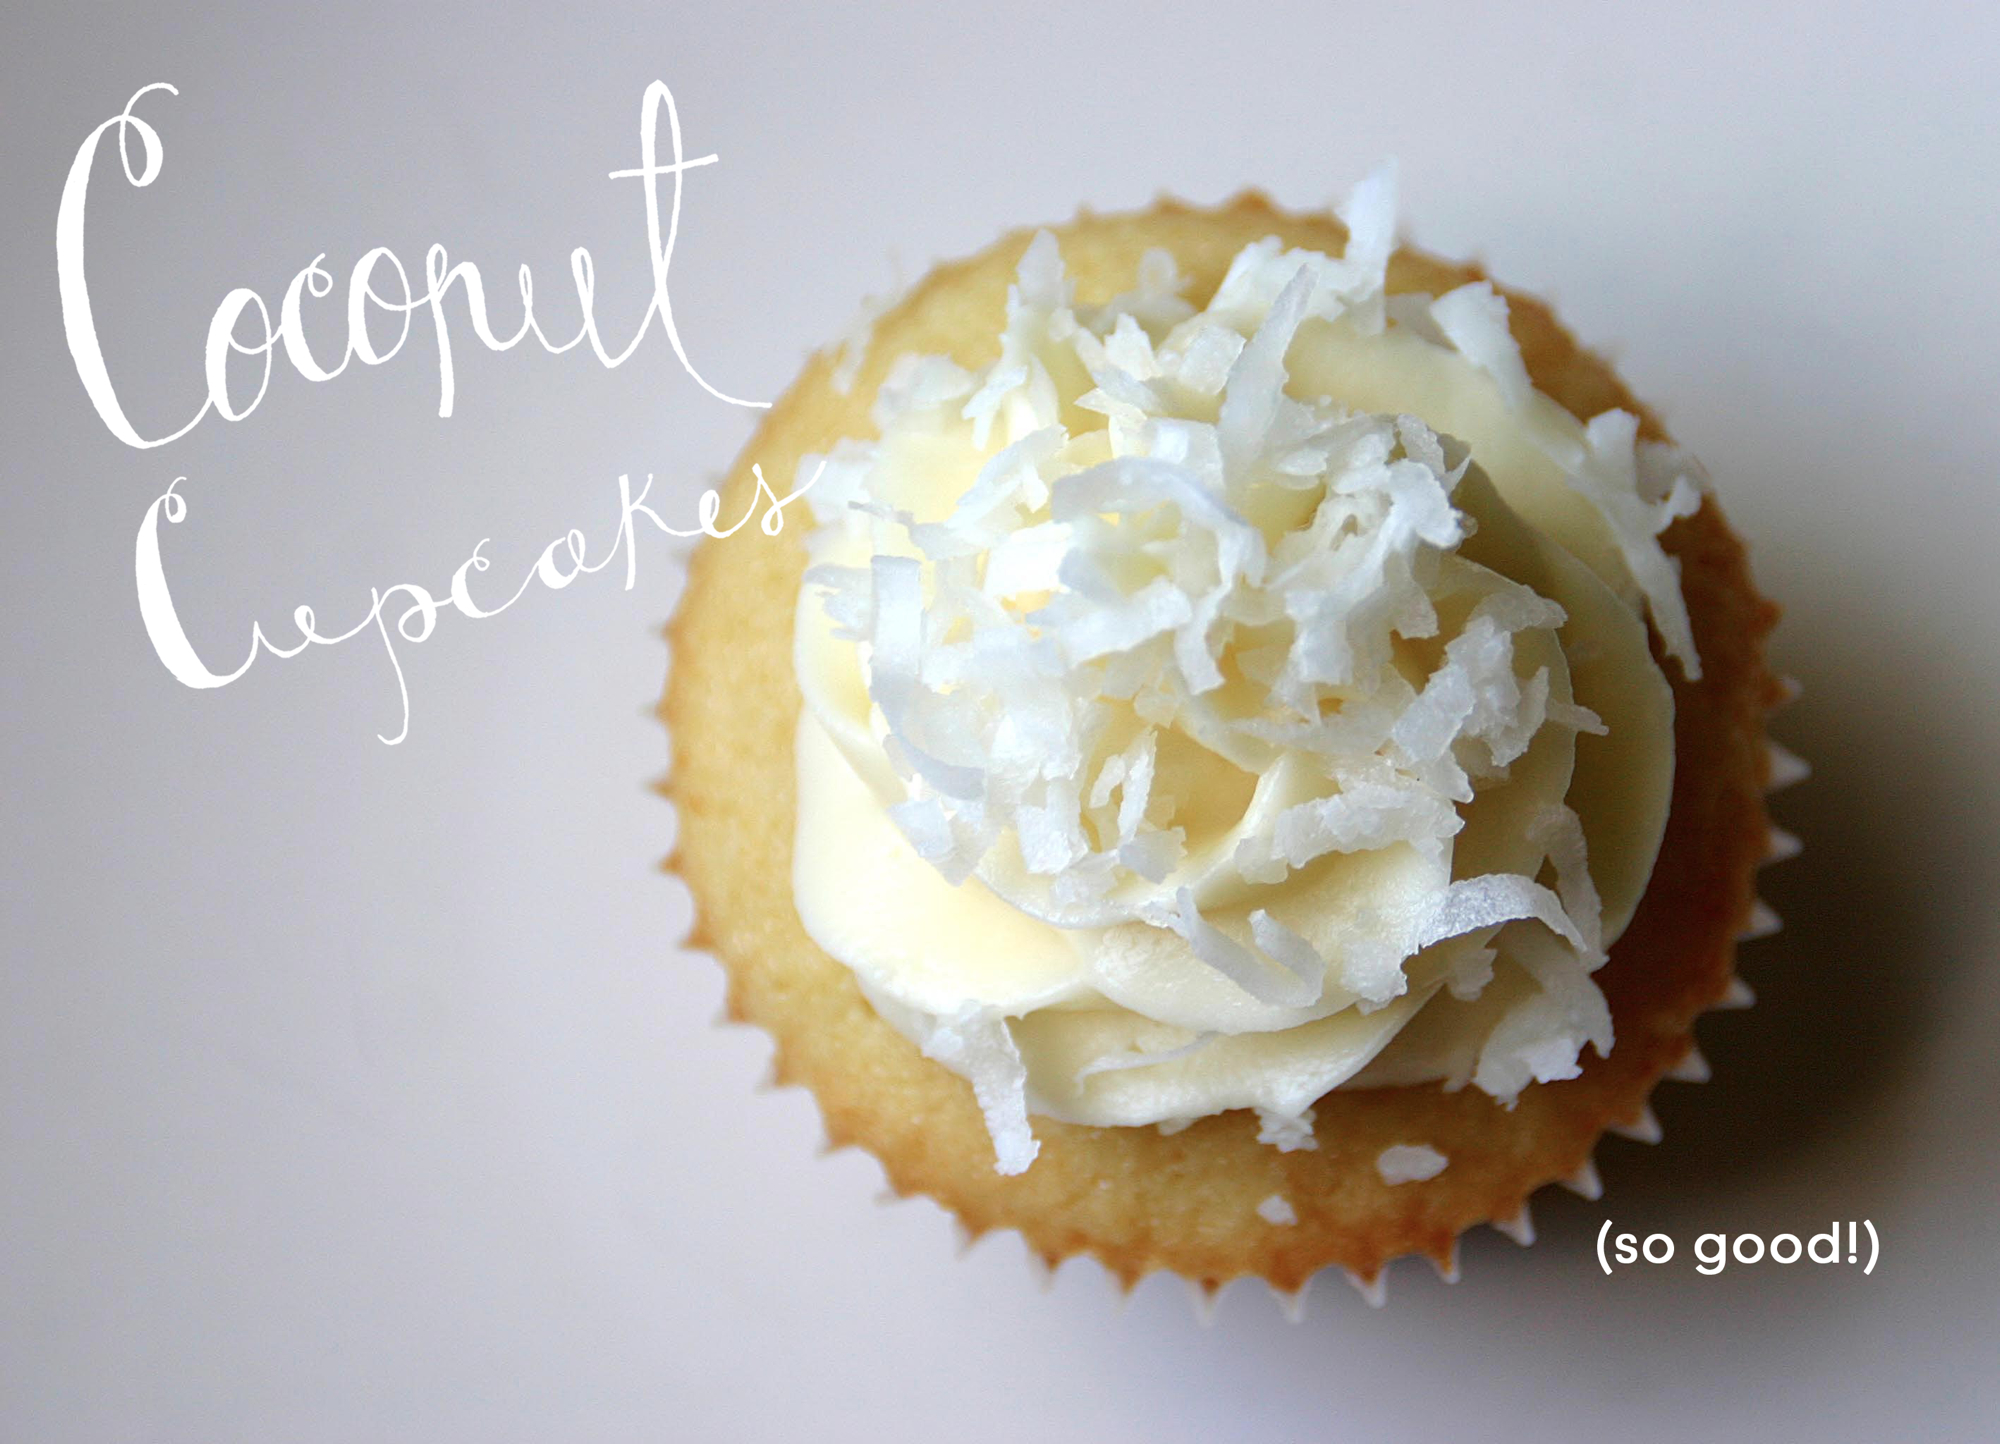 Coconut Cupcakes Sometimes a cupcake is all you